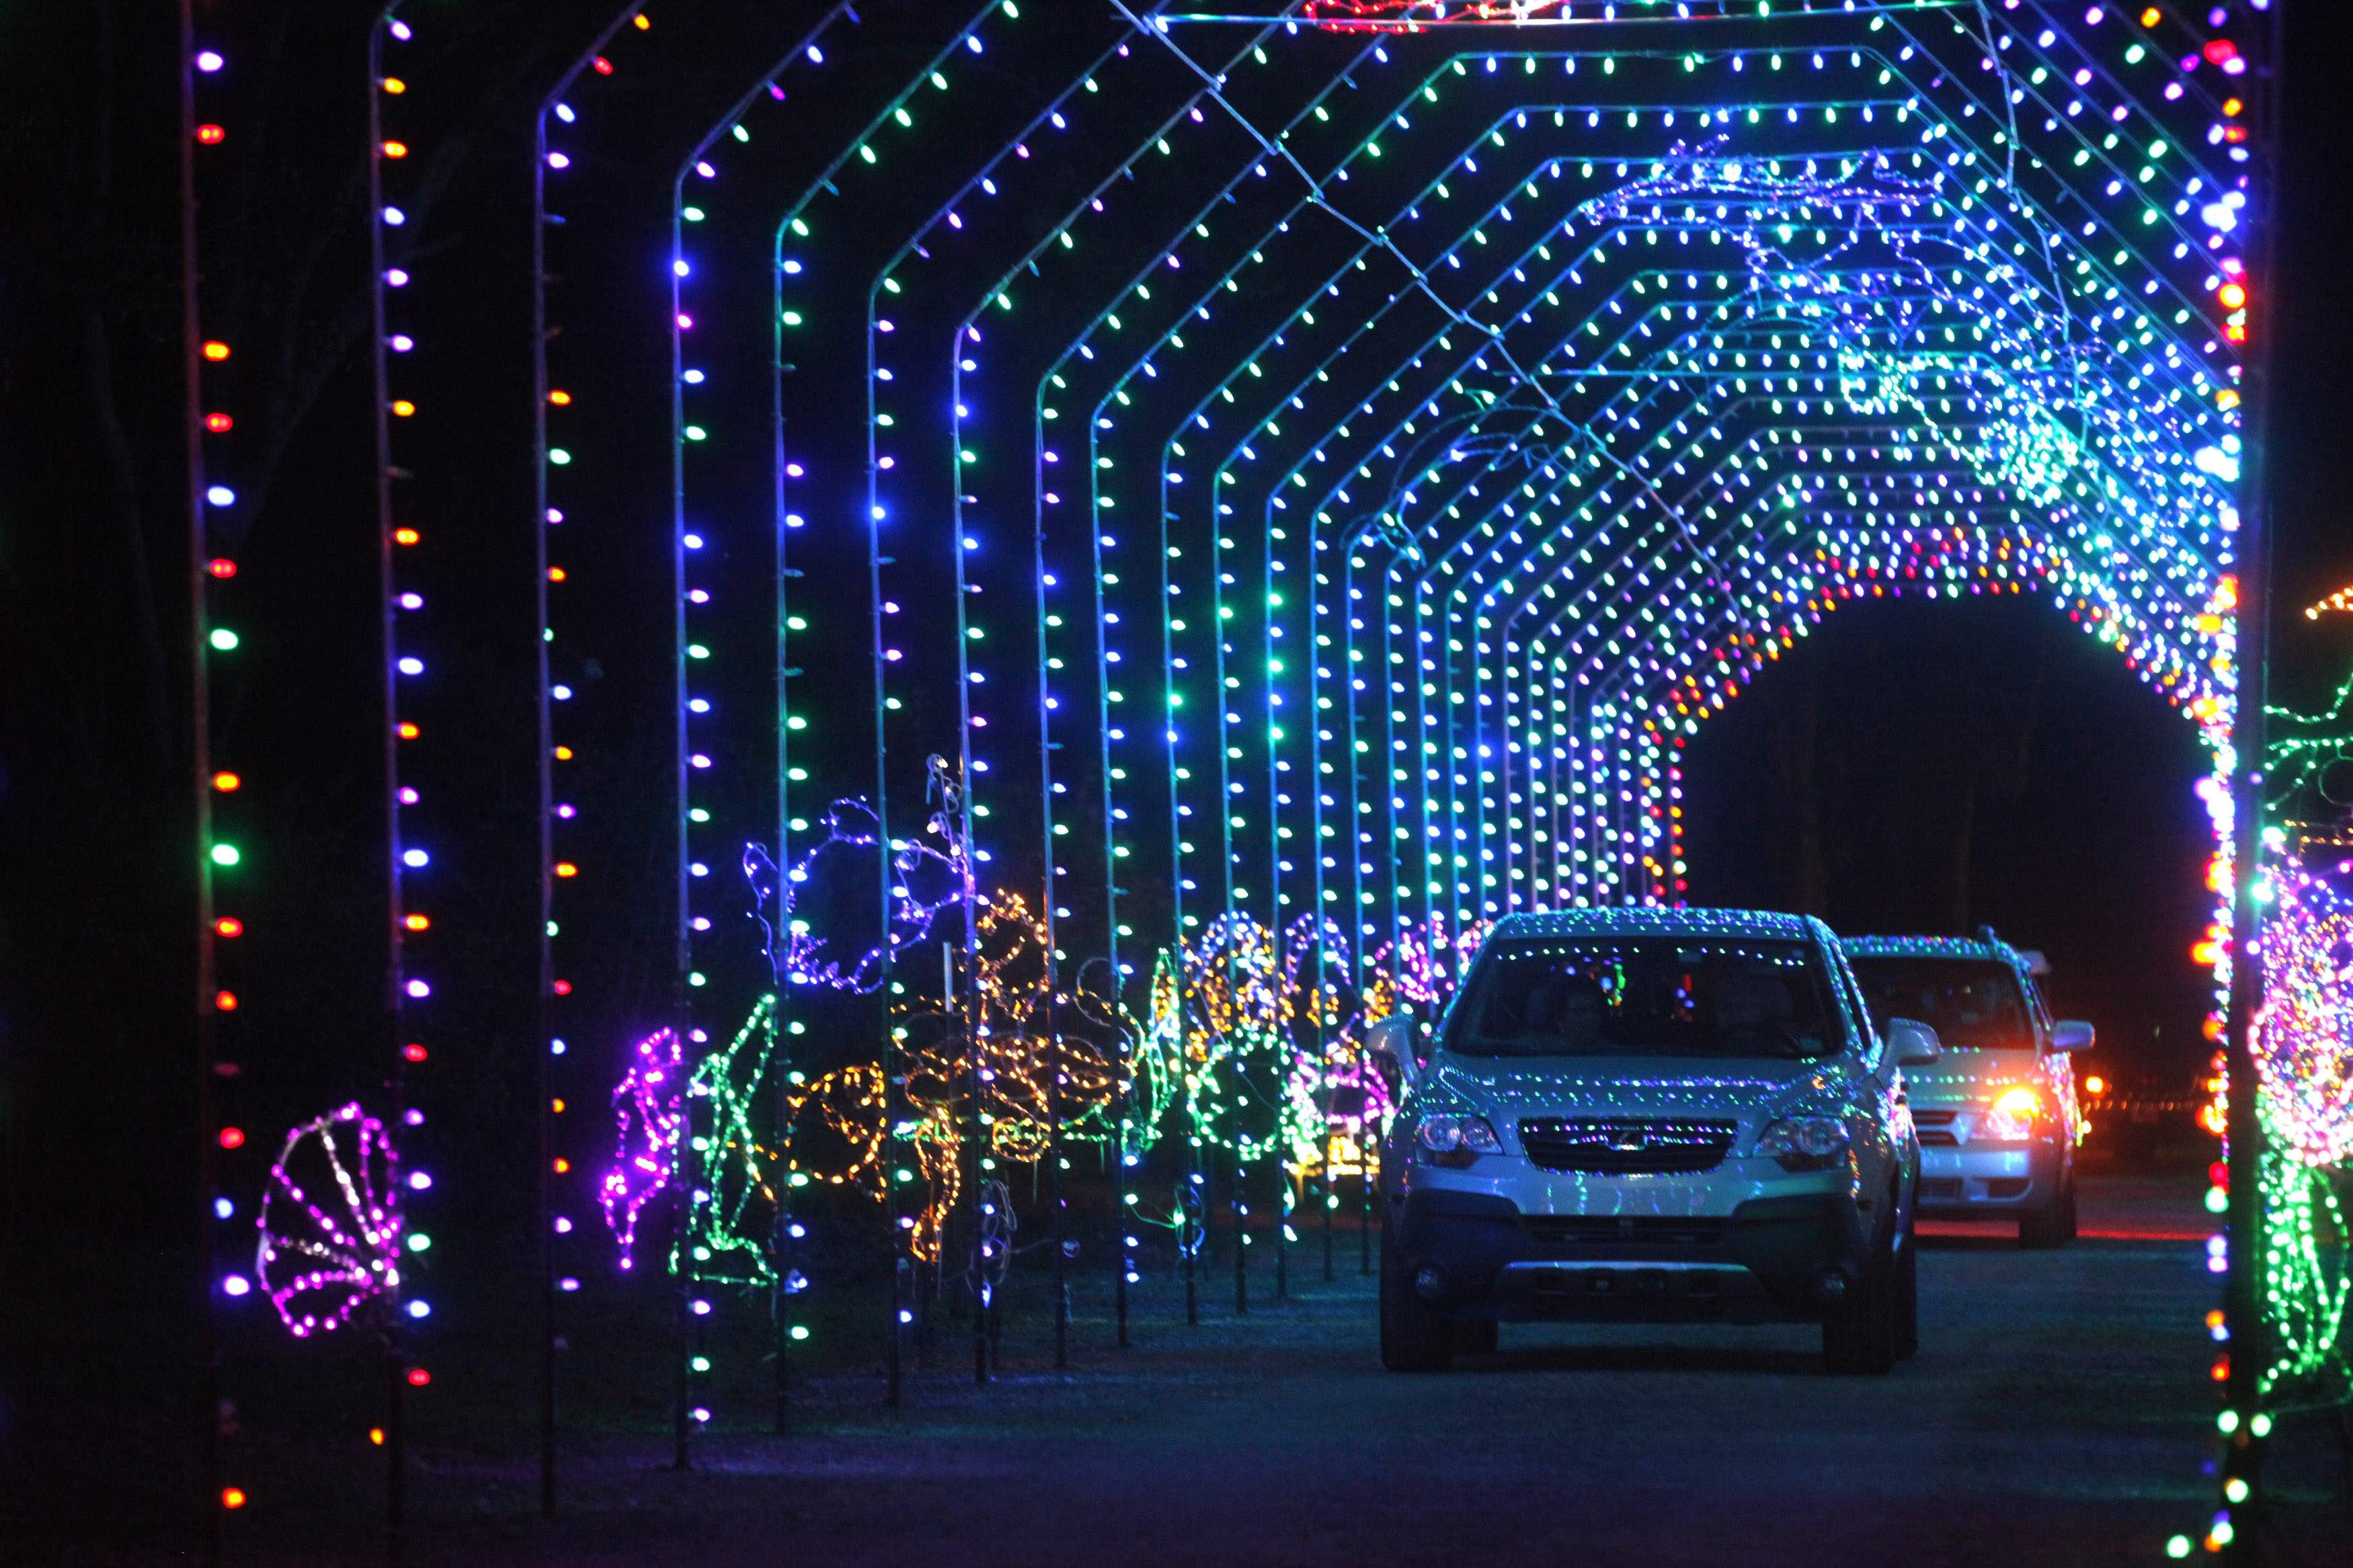 Cars ride through a tunnel of Christmas lights at the